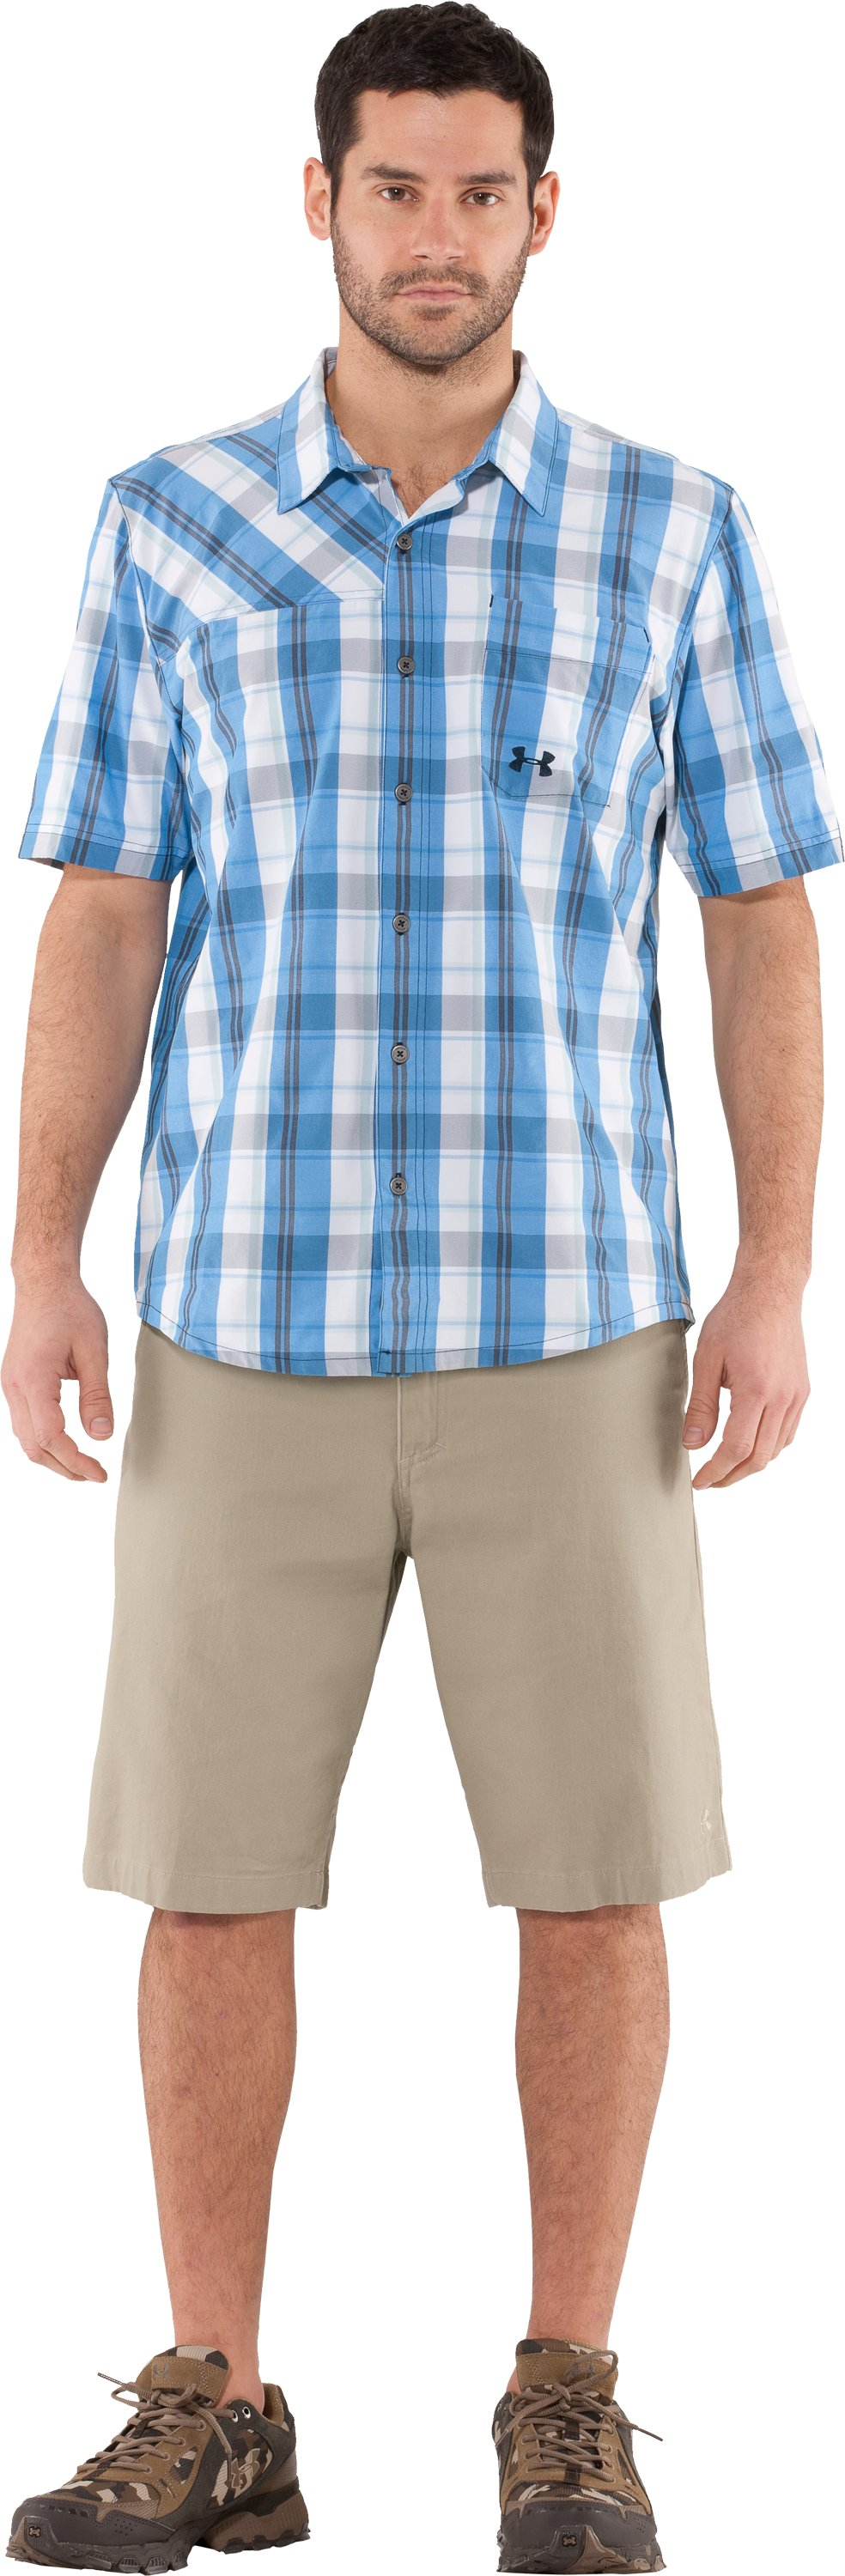 Men's UA Range Plaid Shirt, St. Tropez, zoomed image